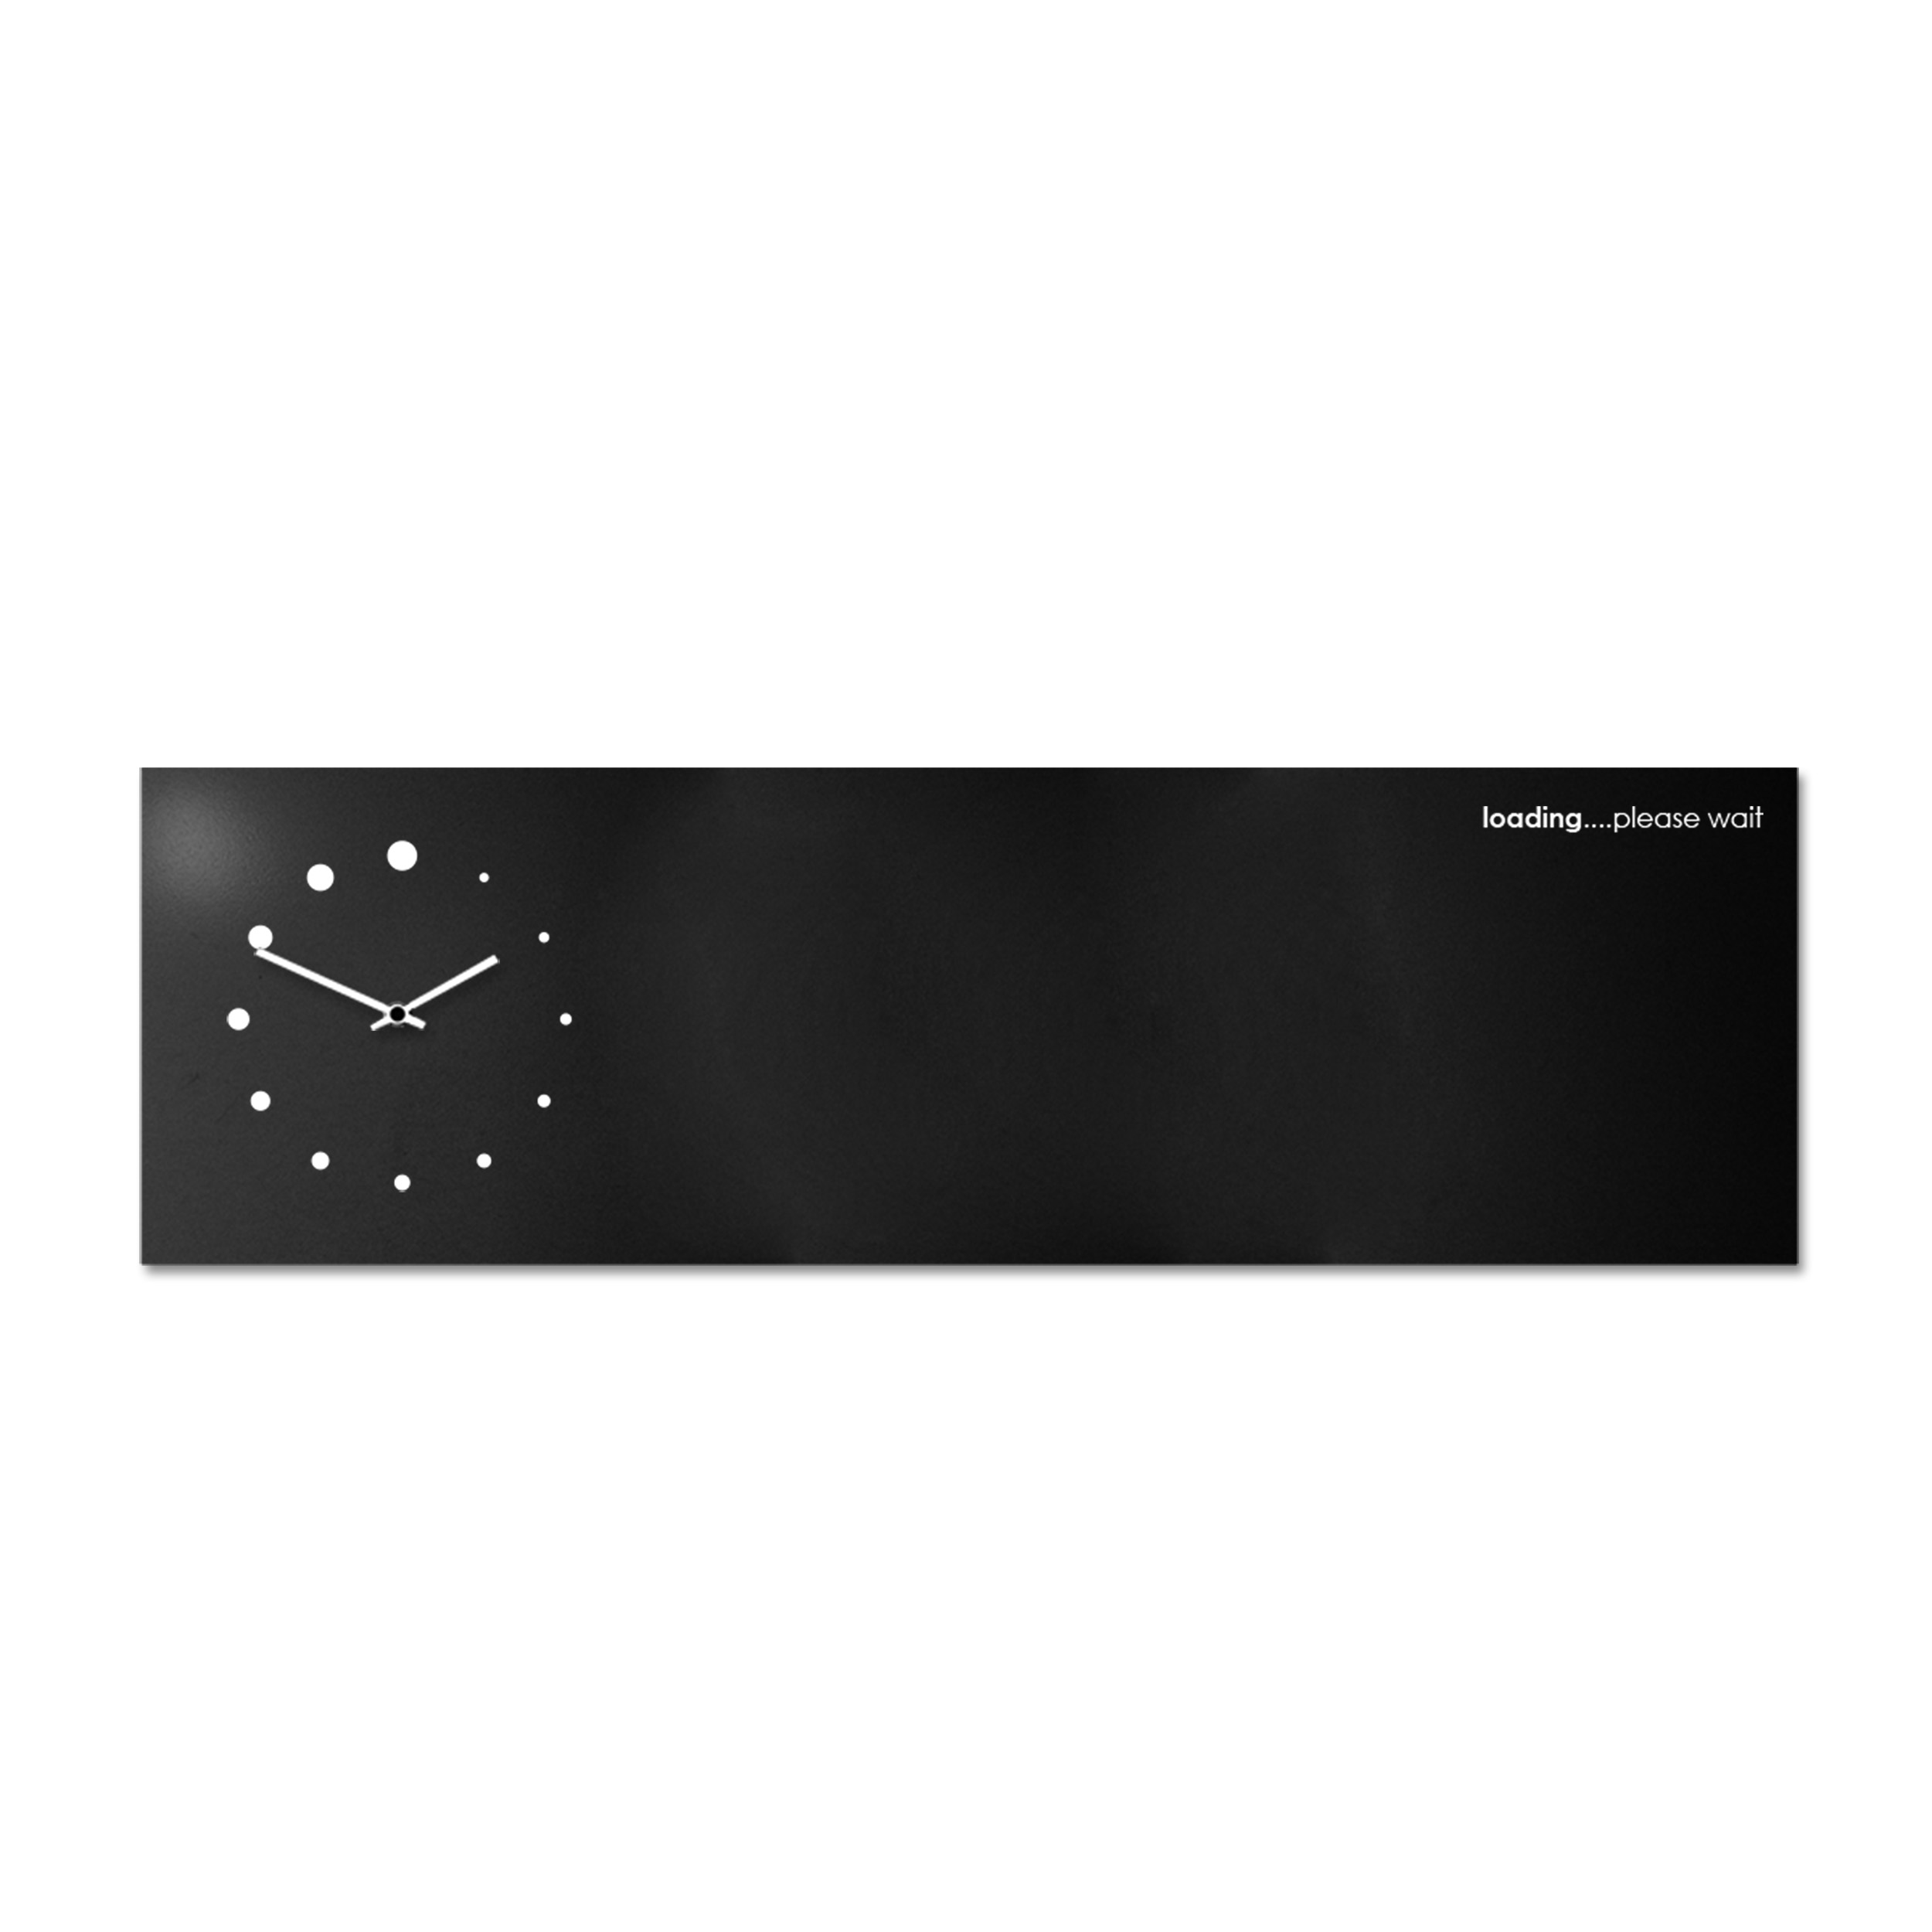 clock-magnetic-board-design-loading-black-designobject